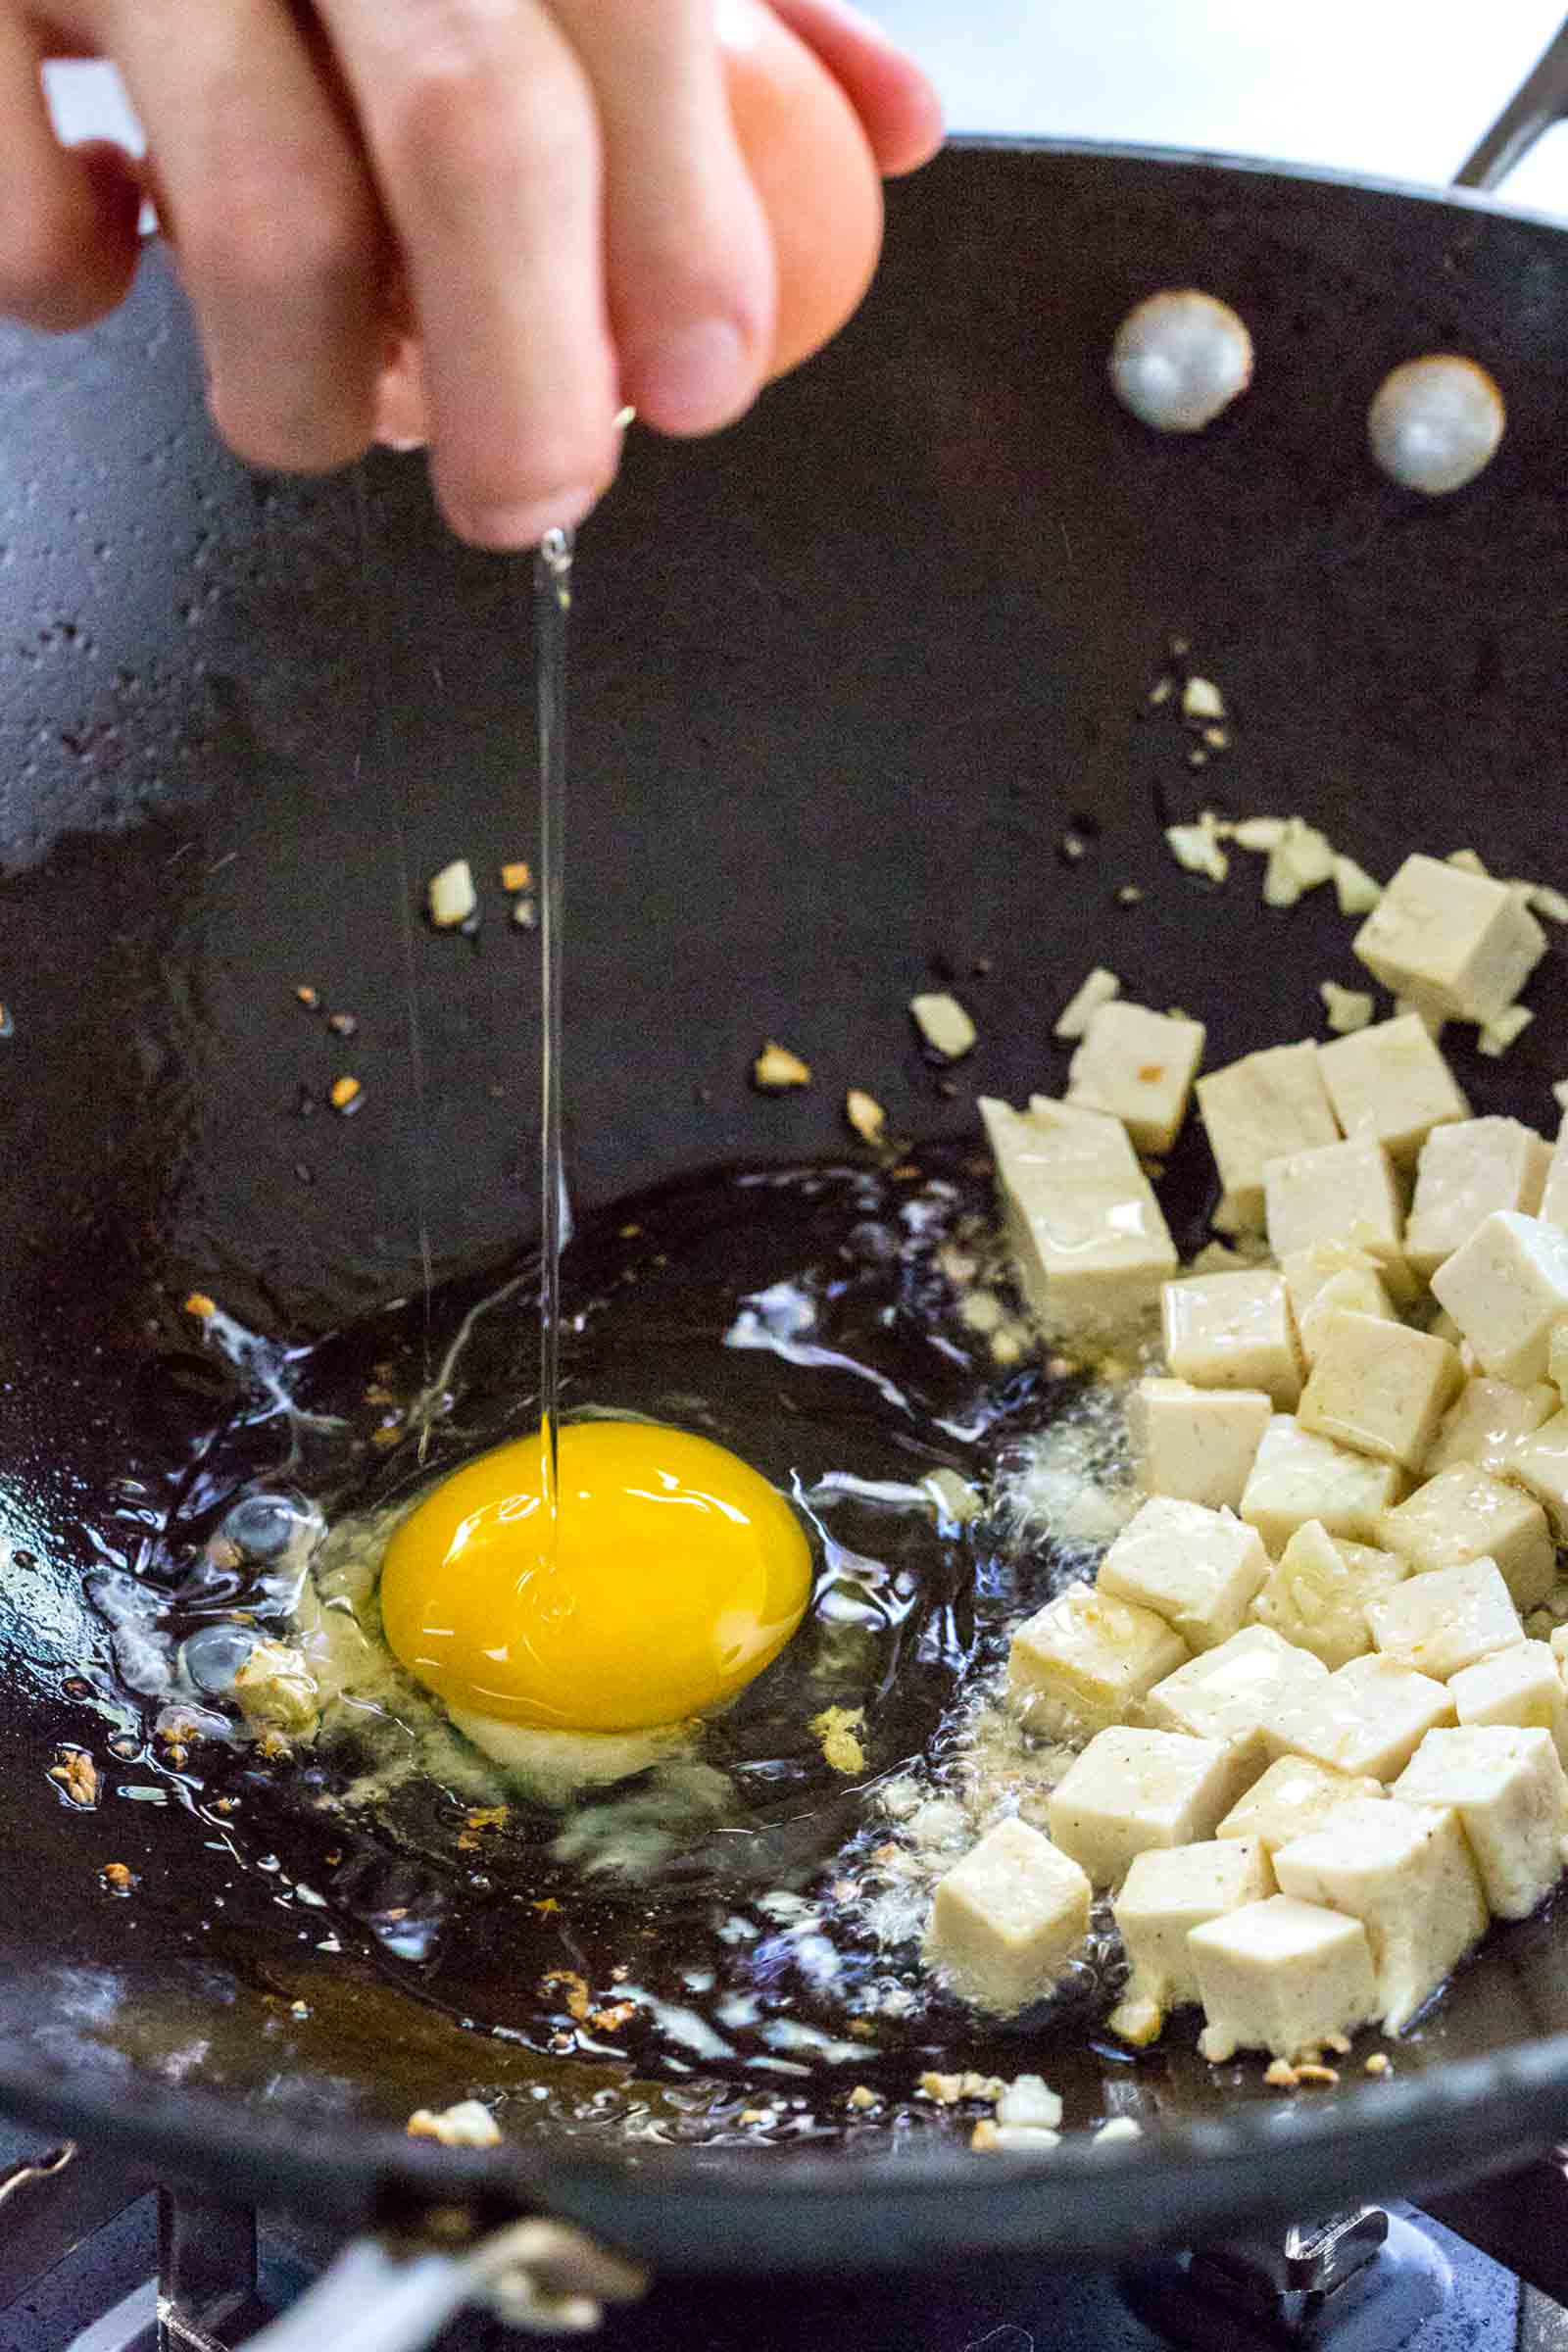 cracking an egg into a wok filled with tofu